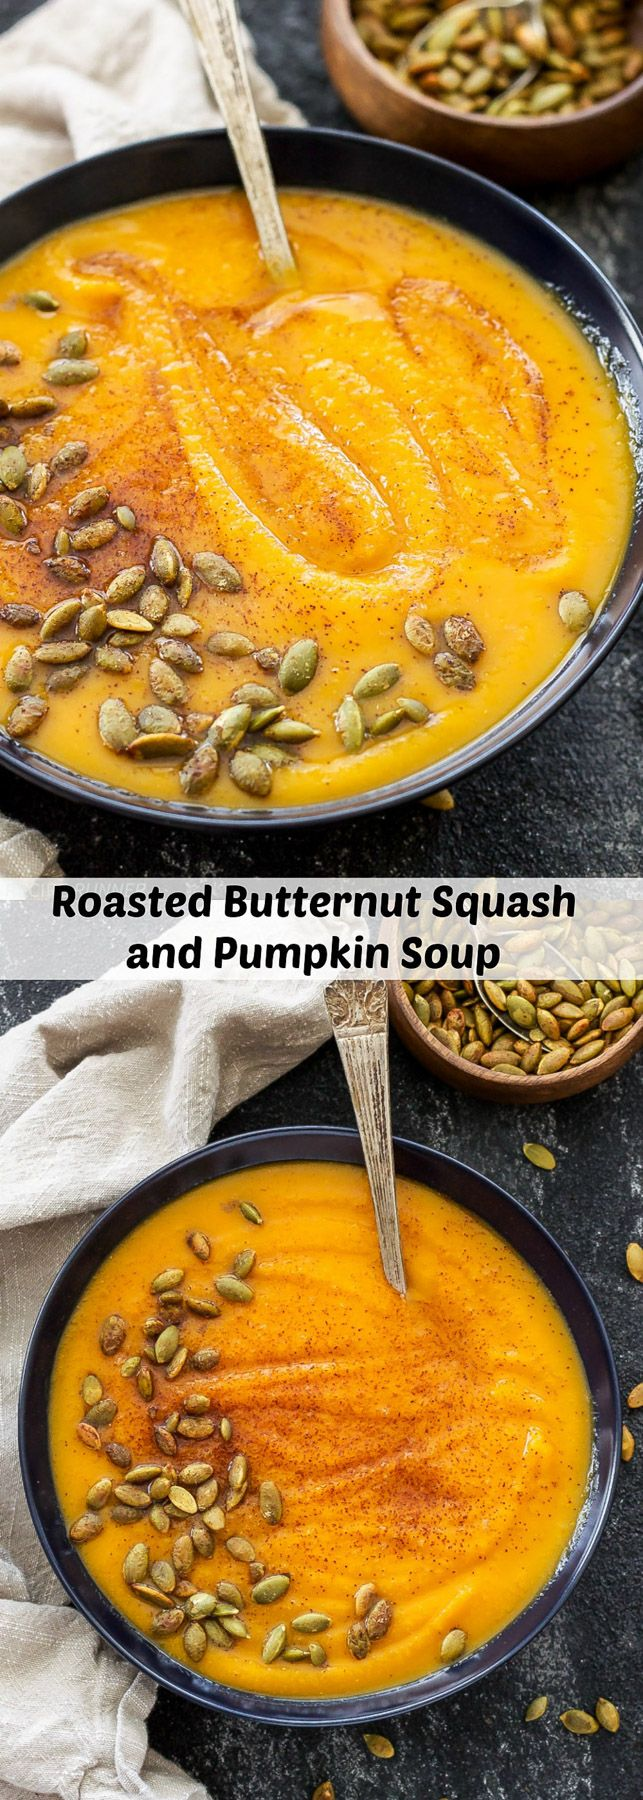 Roasted Butternut Squash and Pumpkin Soup | This thick and creamy fall soup has the perfect balance of sweet and savory flavors! Gluten free, vegan and paleo.